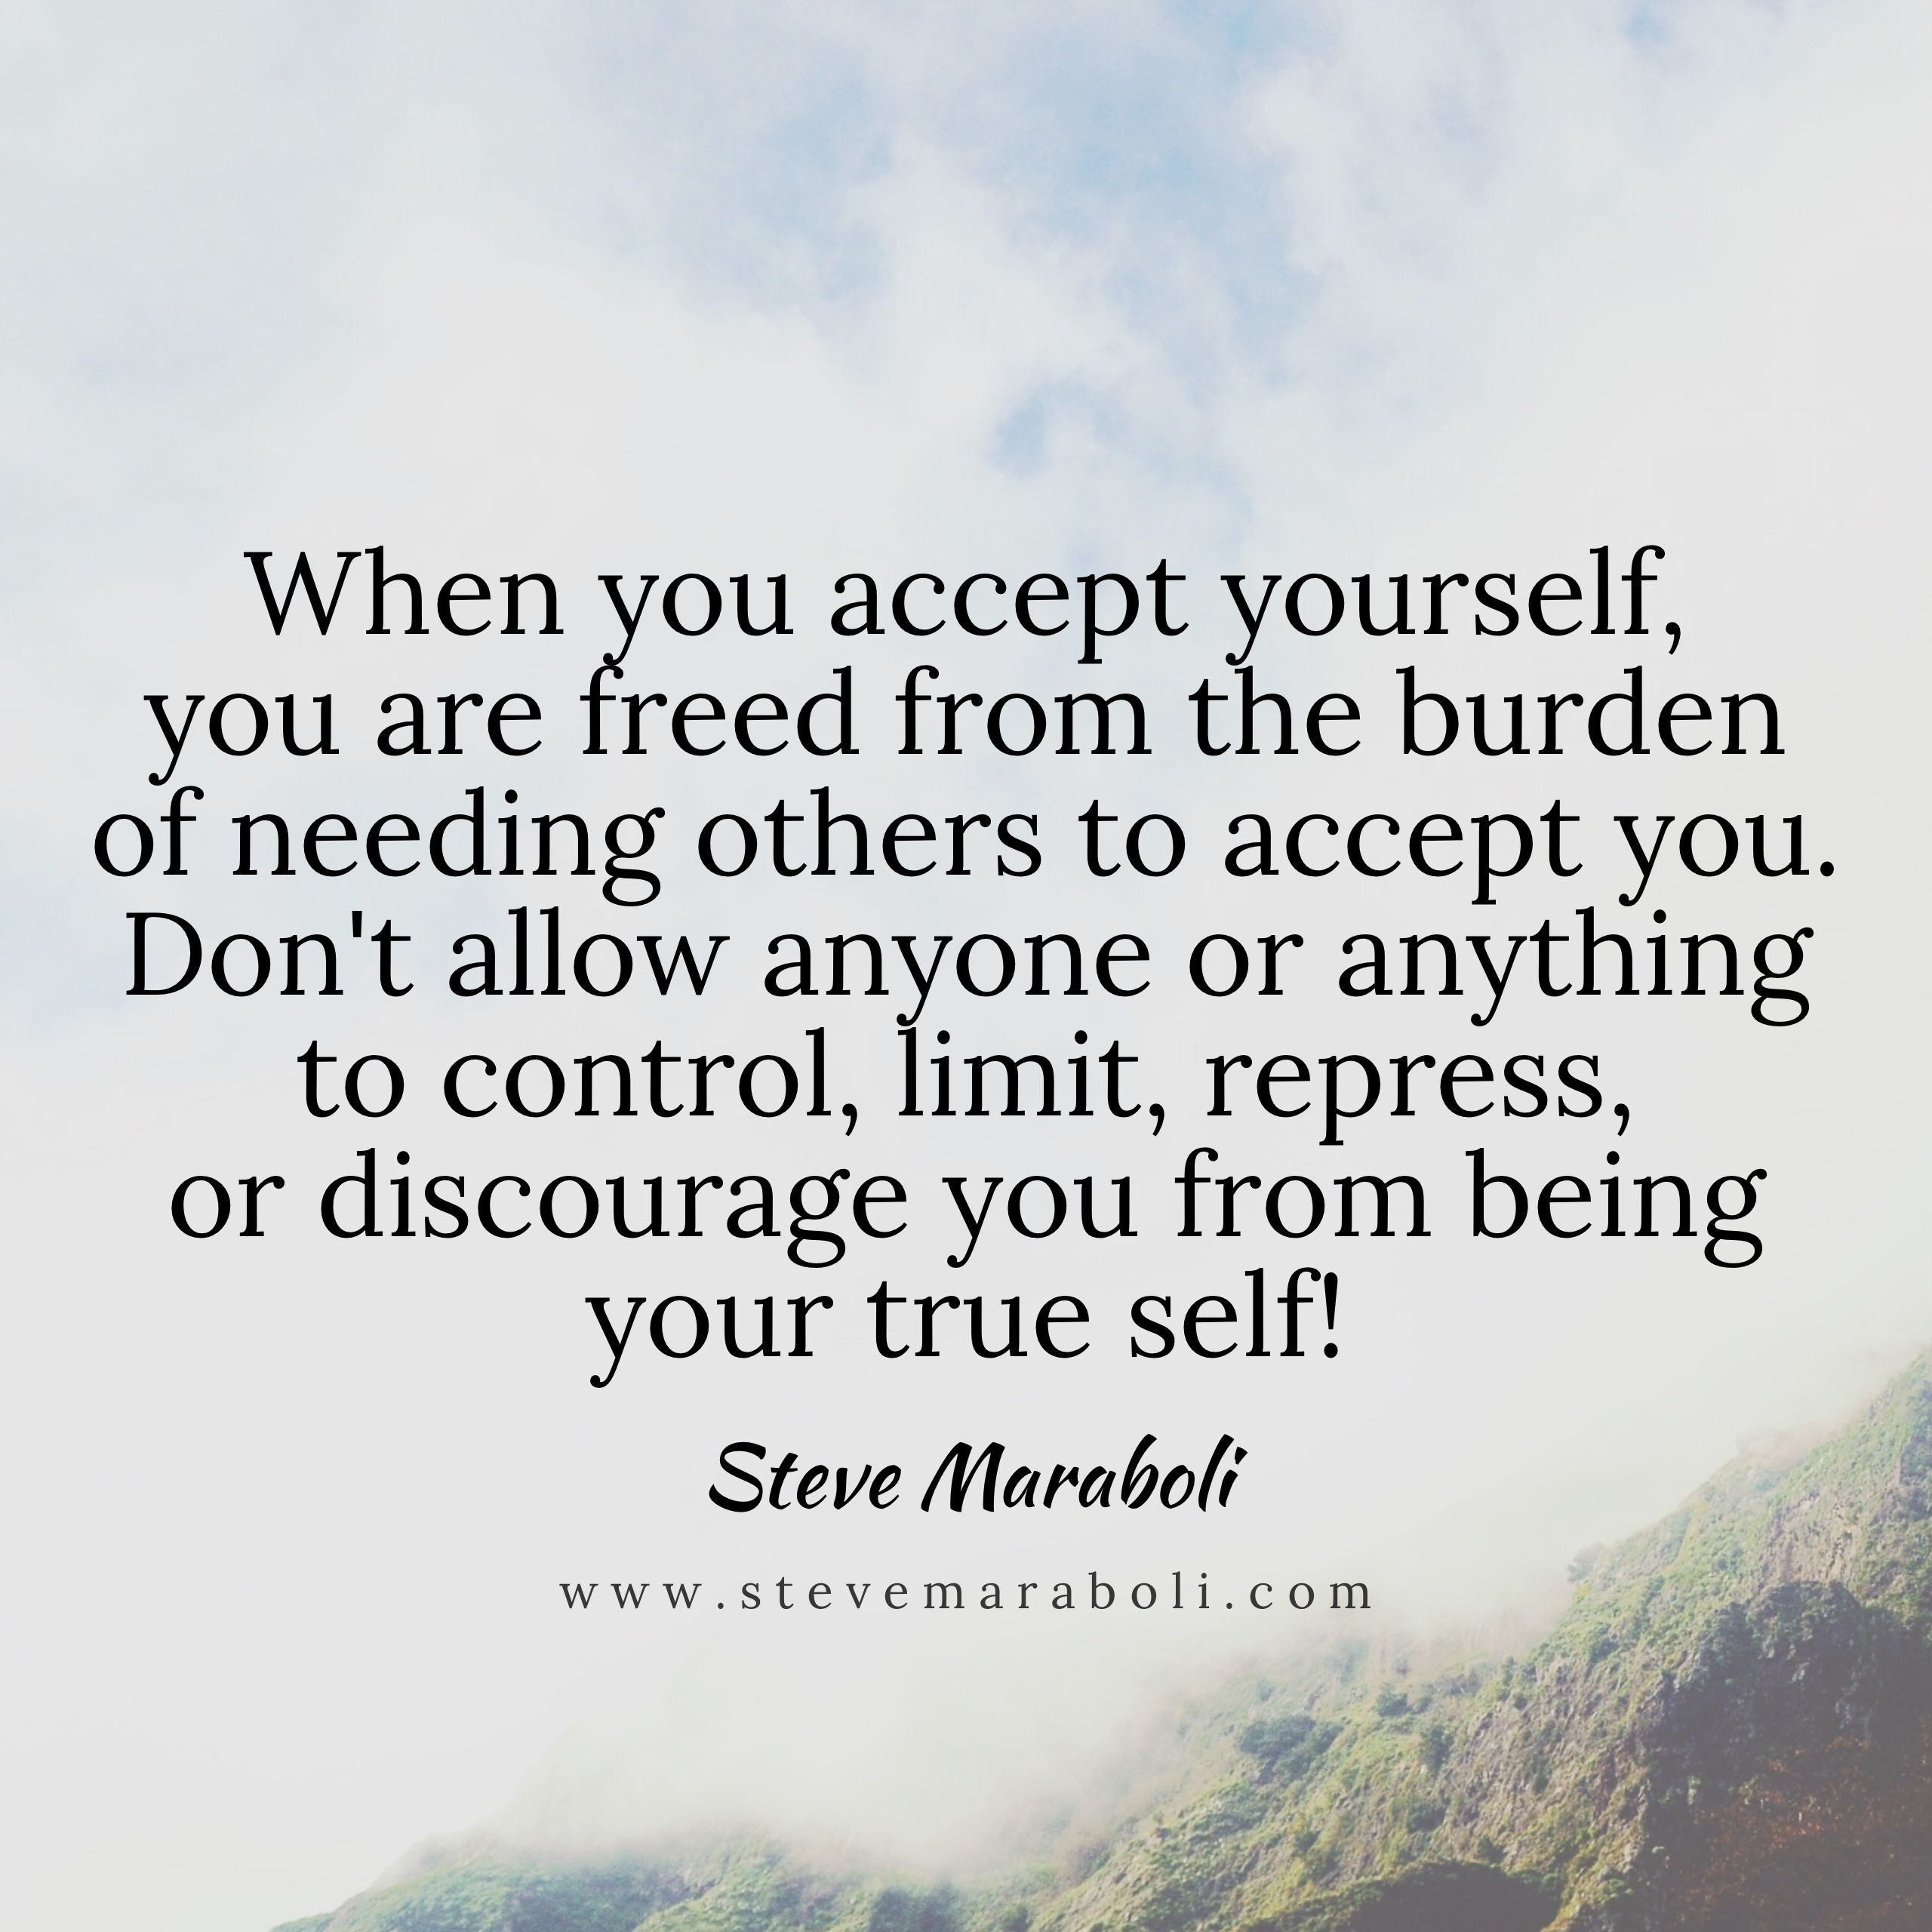 When You Accept Yourself You Are Freed From The Burden Of